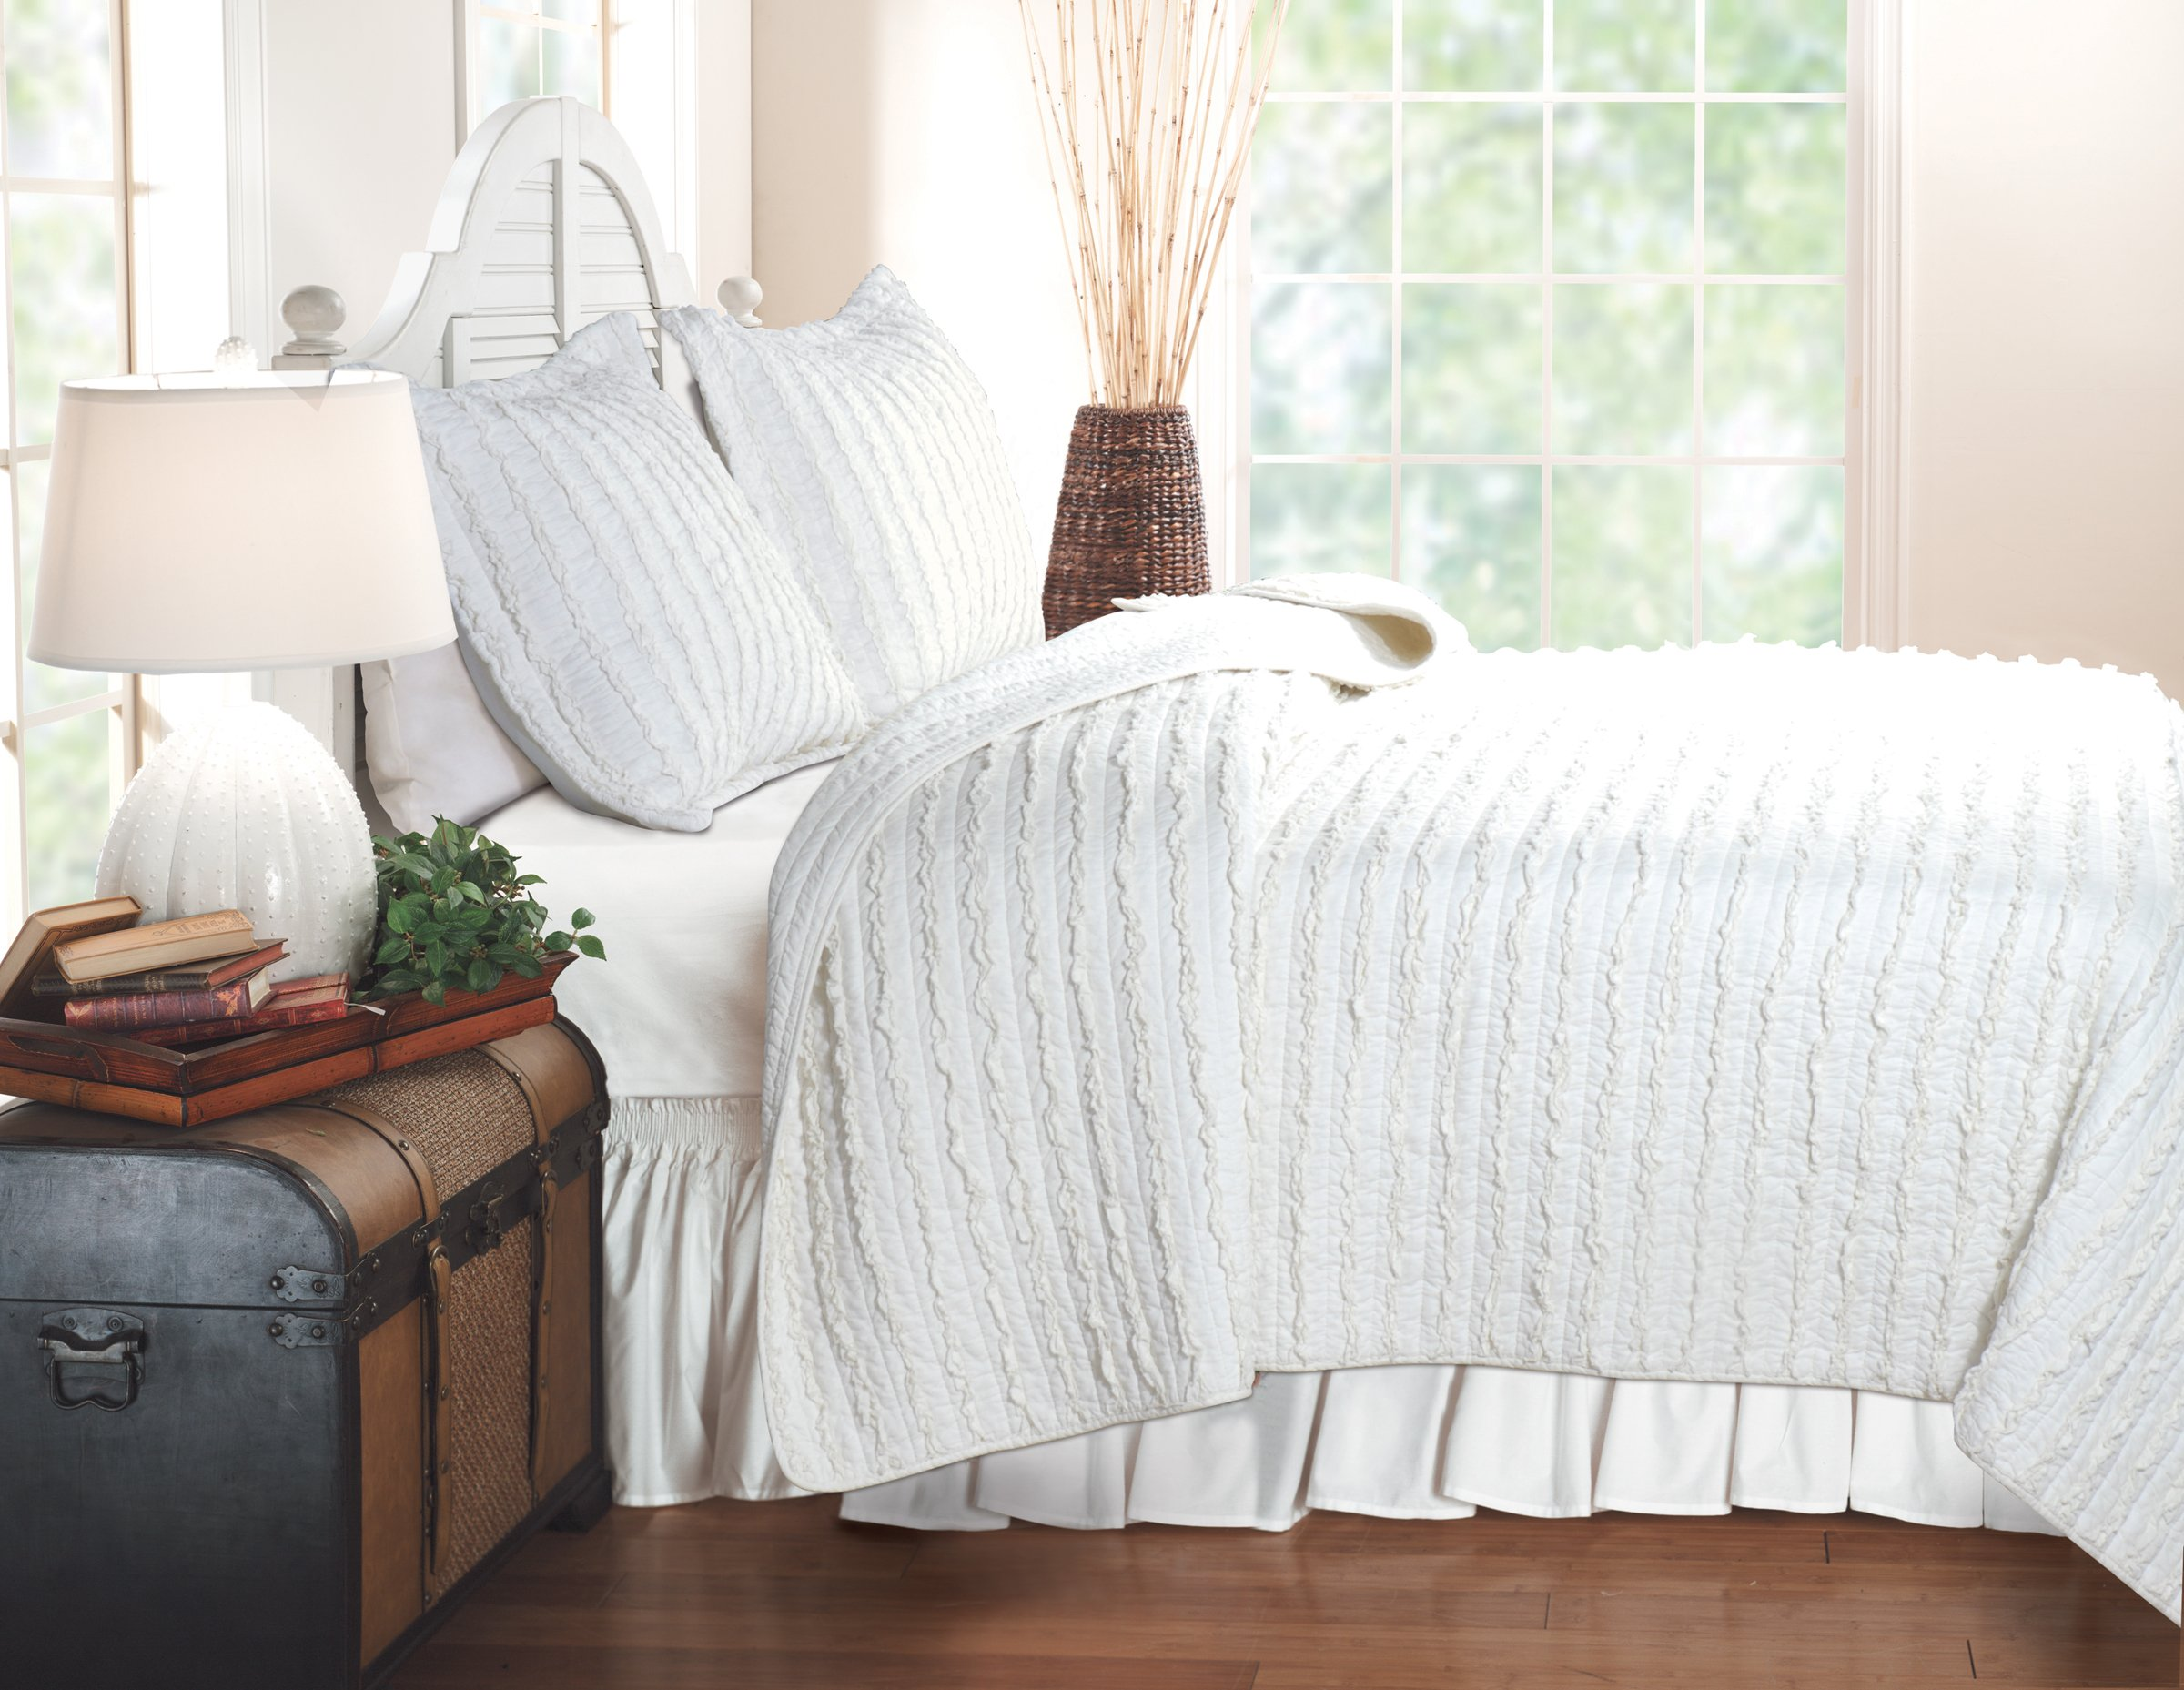 Greenland Home Ruffled White Quilt Set, Full/Queen